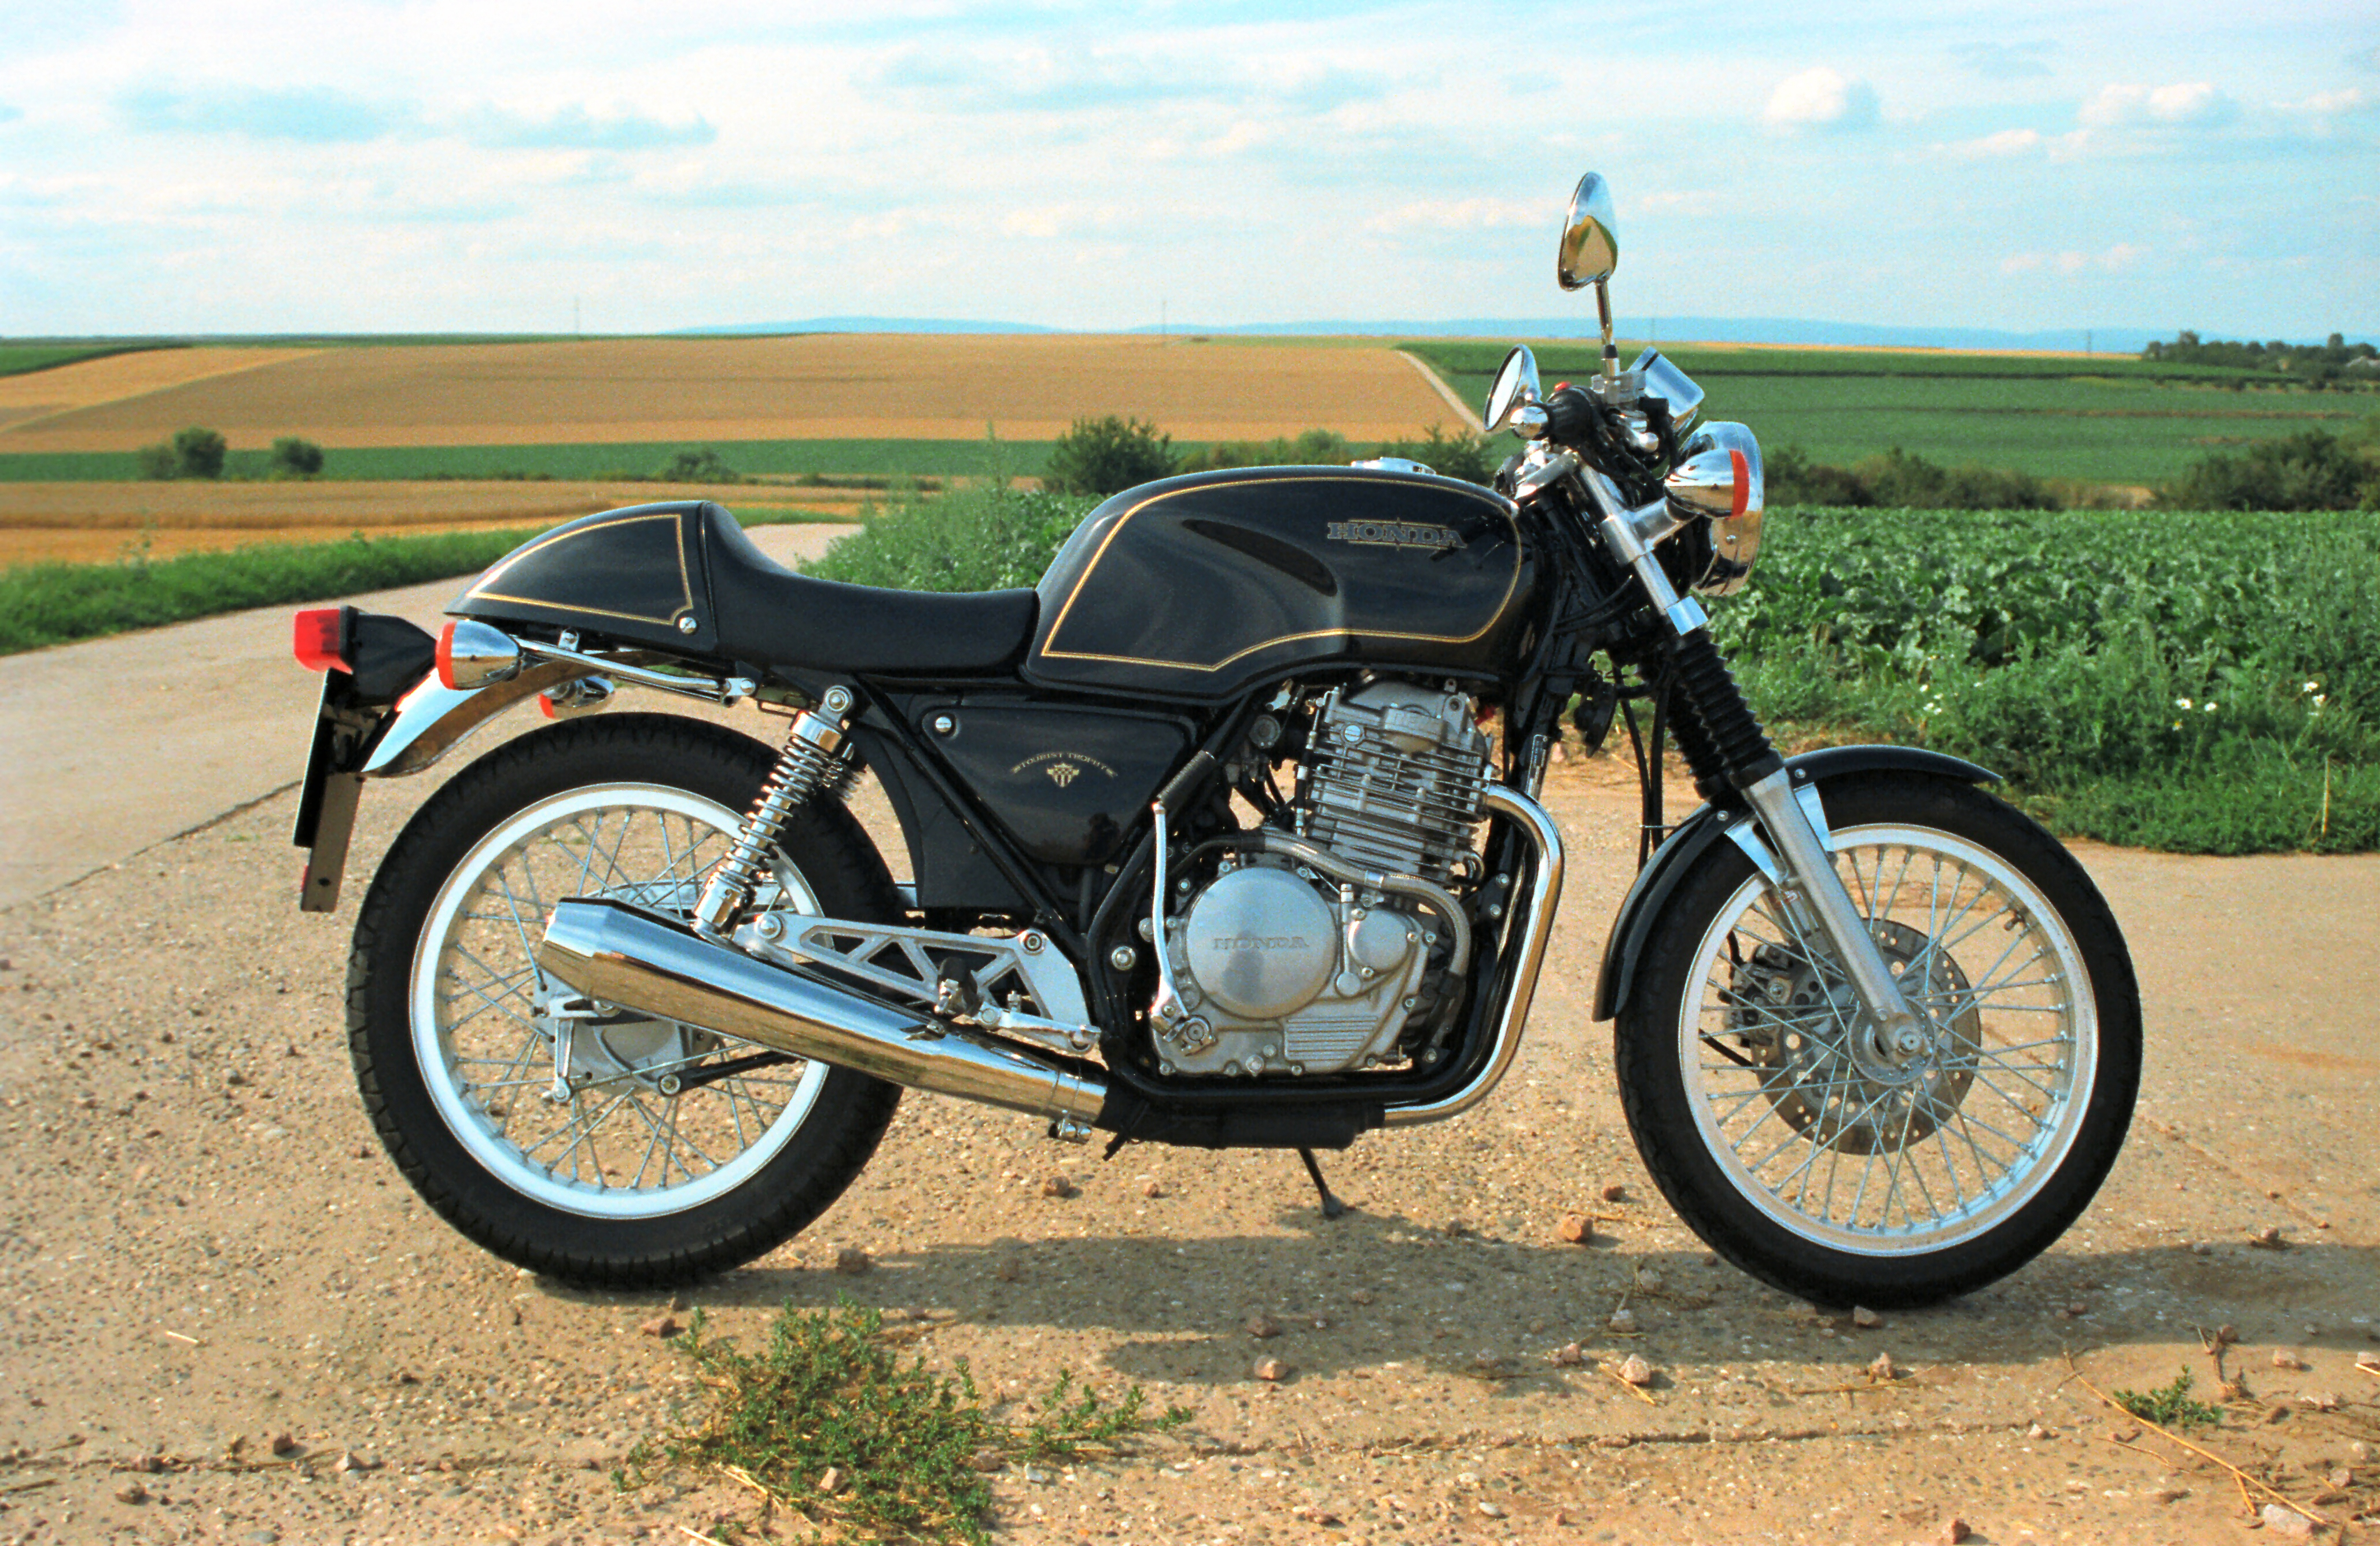 1985 Honda Xbr 500 Pics Specs And Information Xbr500 Wiring Diagram 148758